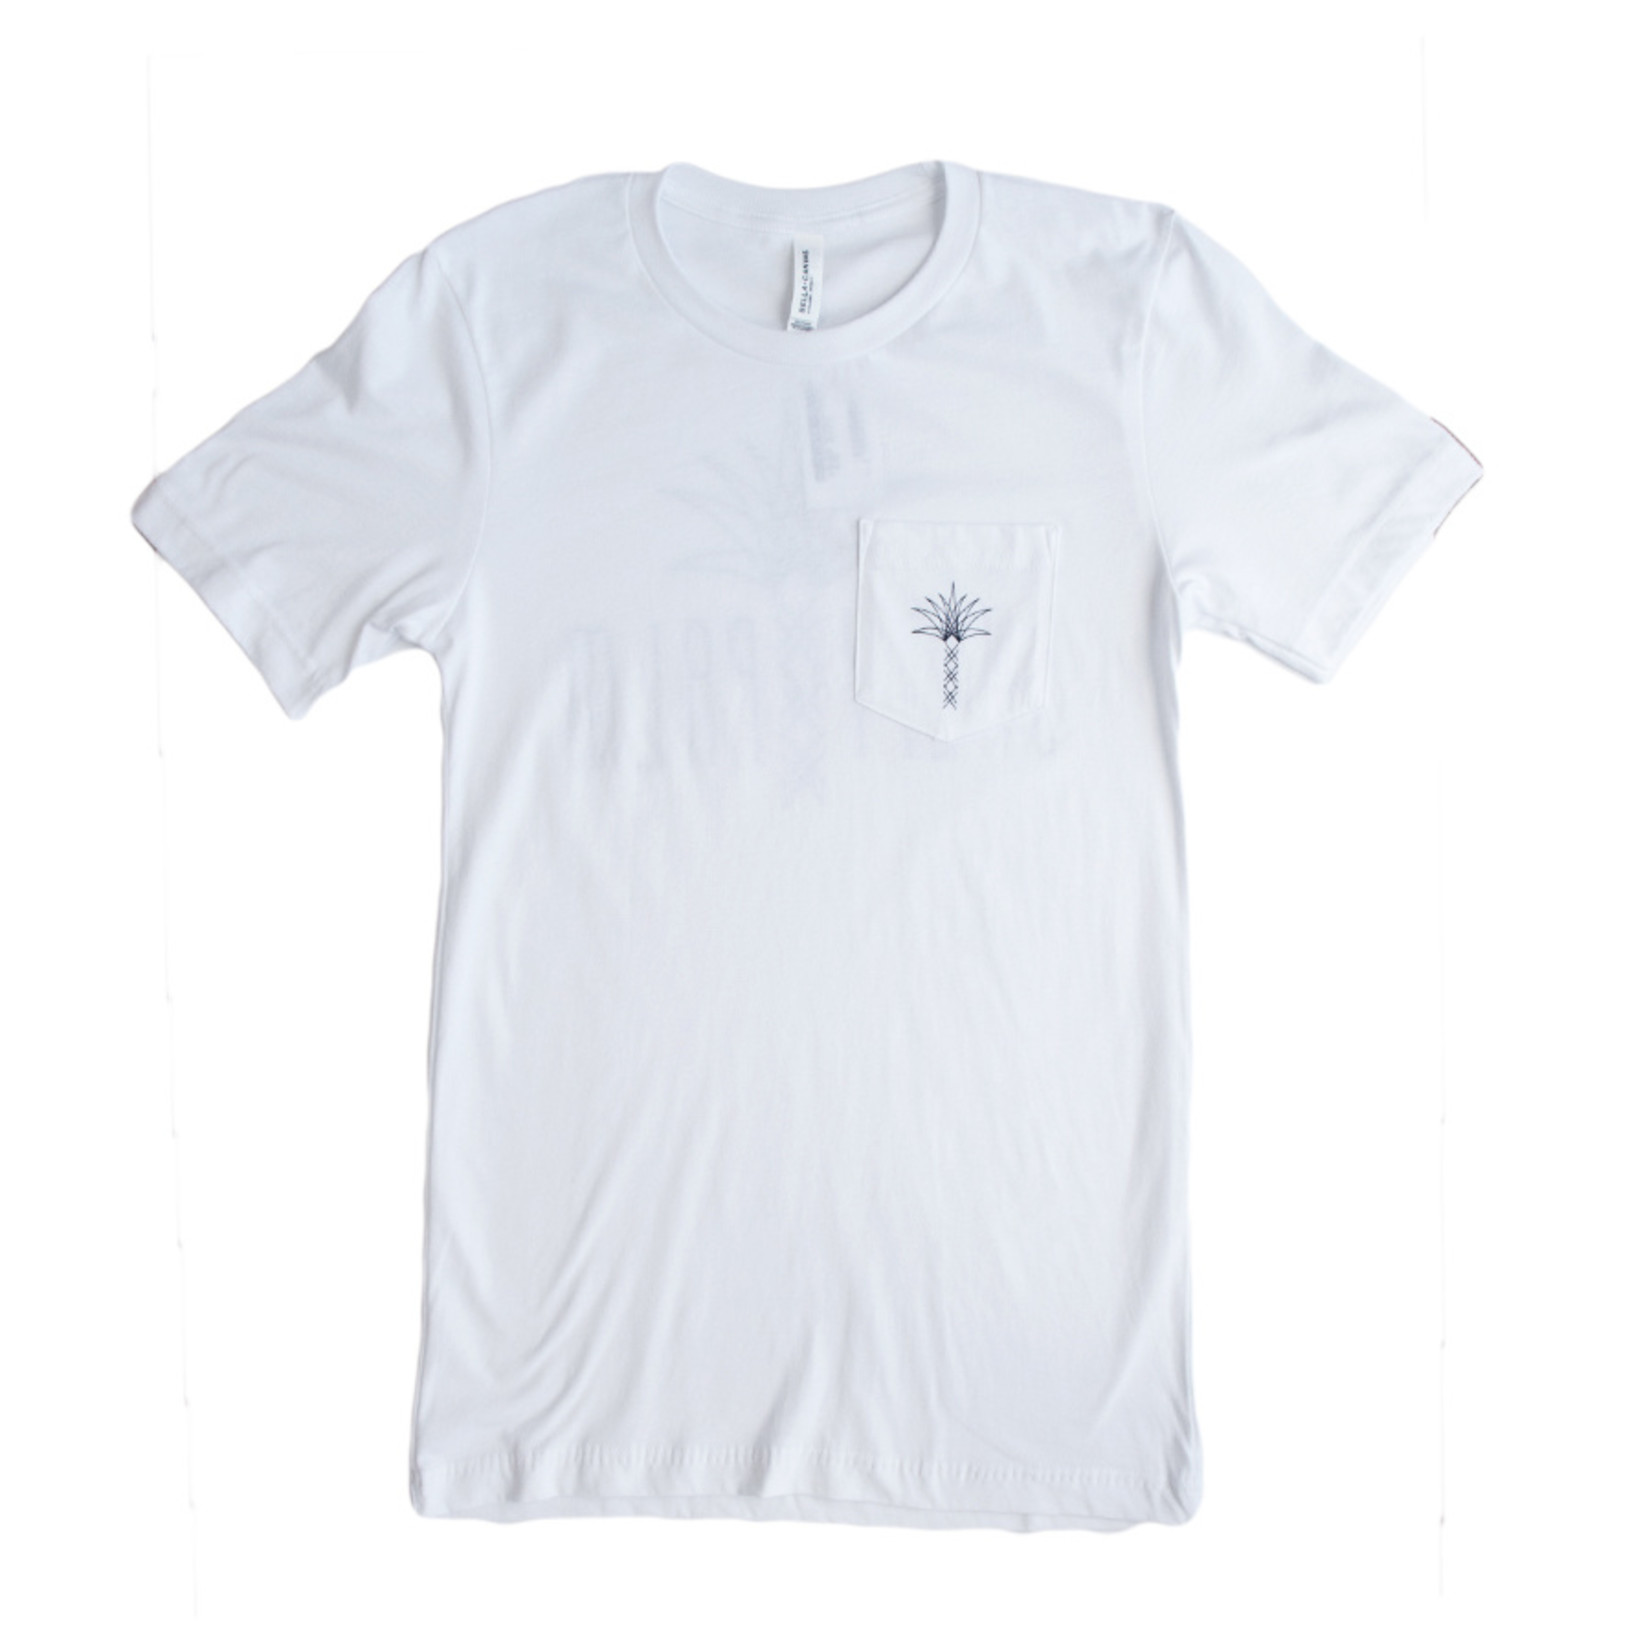 The Salty Palm The Salty Palm Pocket Tee